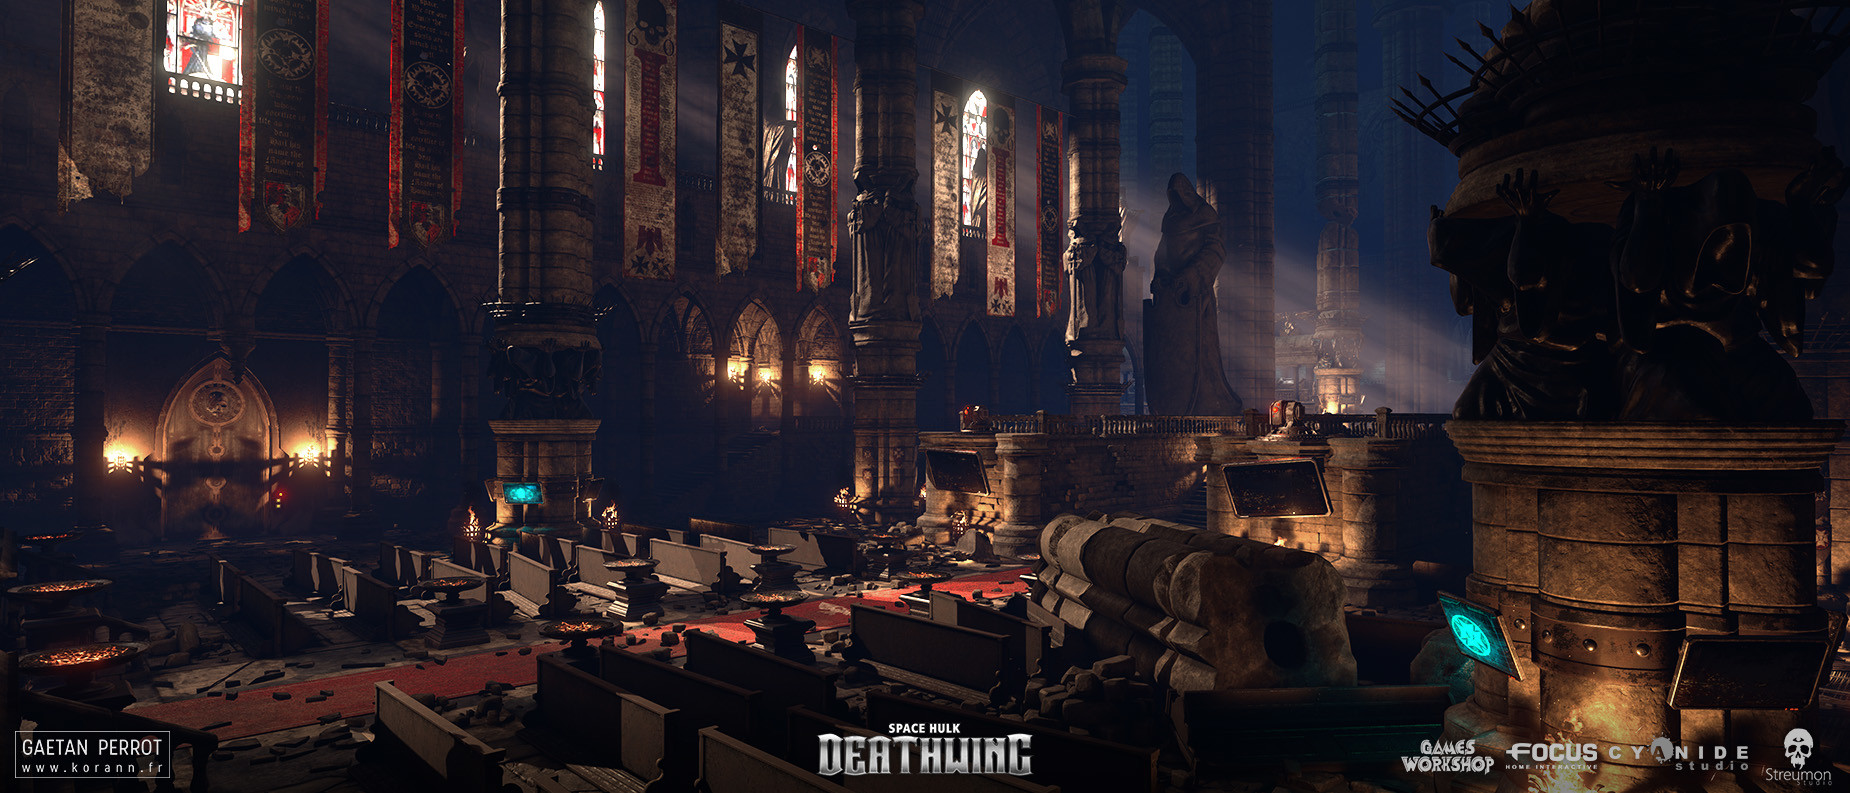 ArtStation - Space Hulk Deathwing - Black Templar Cathedral 02